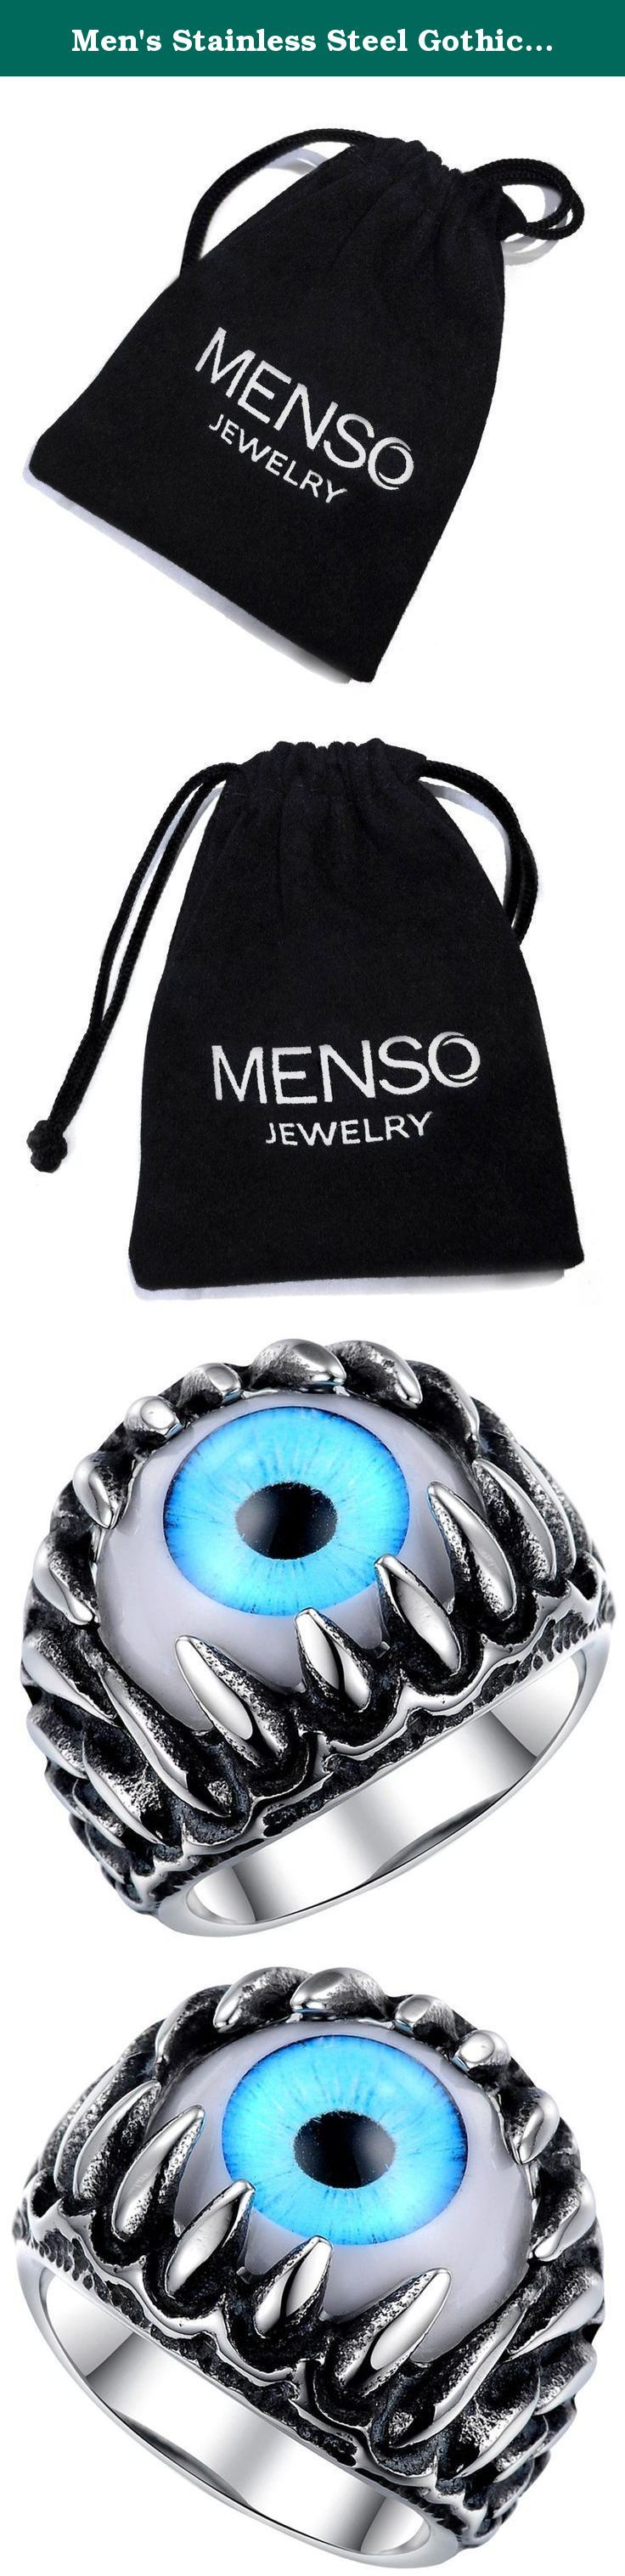 Men's Stainless Steel Gothic Skull Dragon Claw Evil Devil Eye Biker Ring,vintage Blue Silver White Size 10. MENSO - High quality Jewelry Discover the MENSO Collection of jewelry. The selection of high-quality jewelry featured in the MENSO Collection offers Great values at affordable Price, they mainly made of high quality Stainless Steel, Tungsten, Silver and Leather. We uphold the highest standard of integrity,professionalism and customer service. In addition to unique designs,unbeatable...